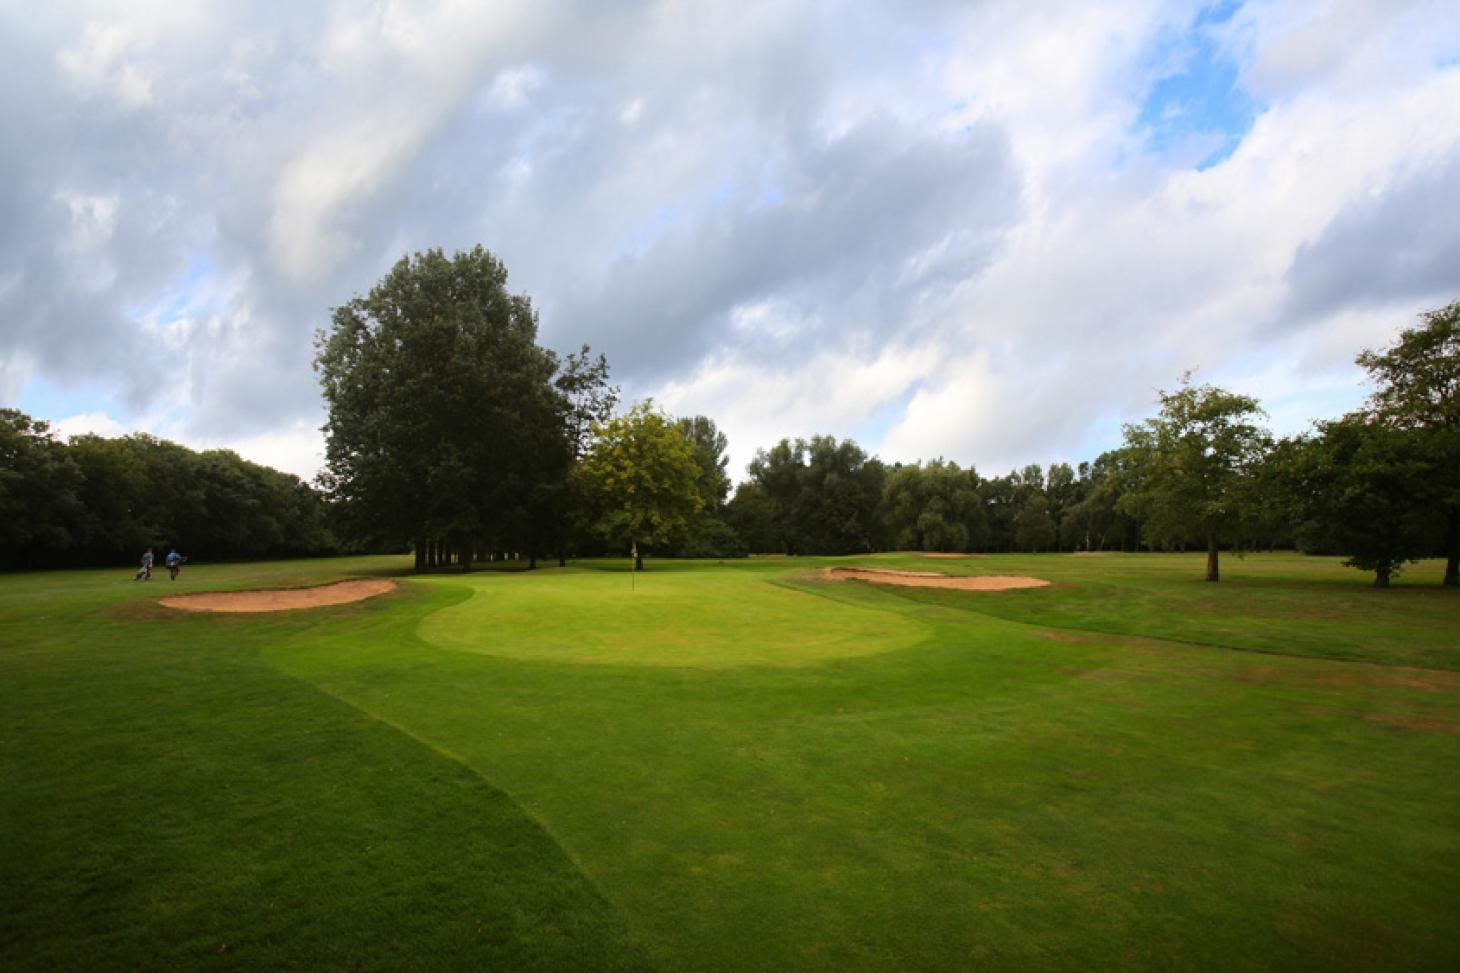 Ruislip Golf Club 18 hole golf course